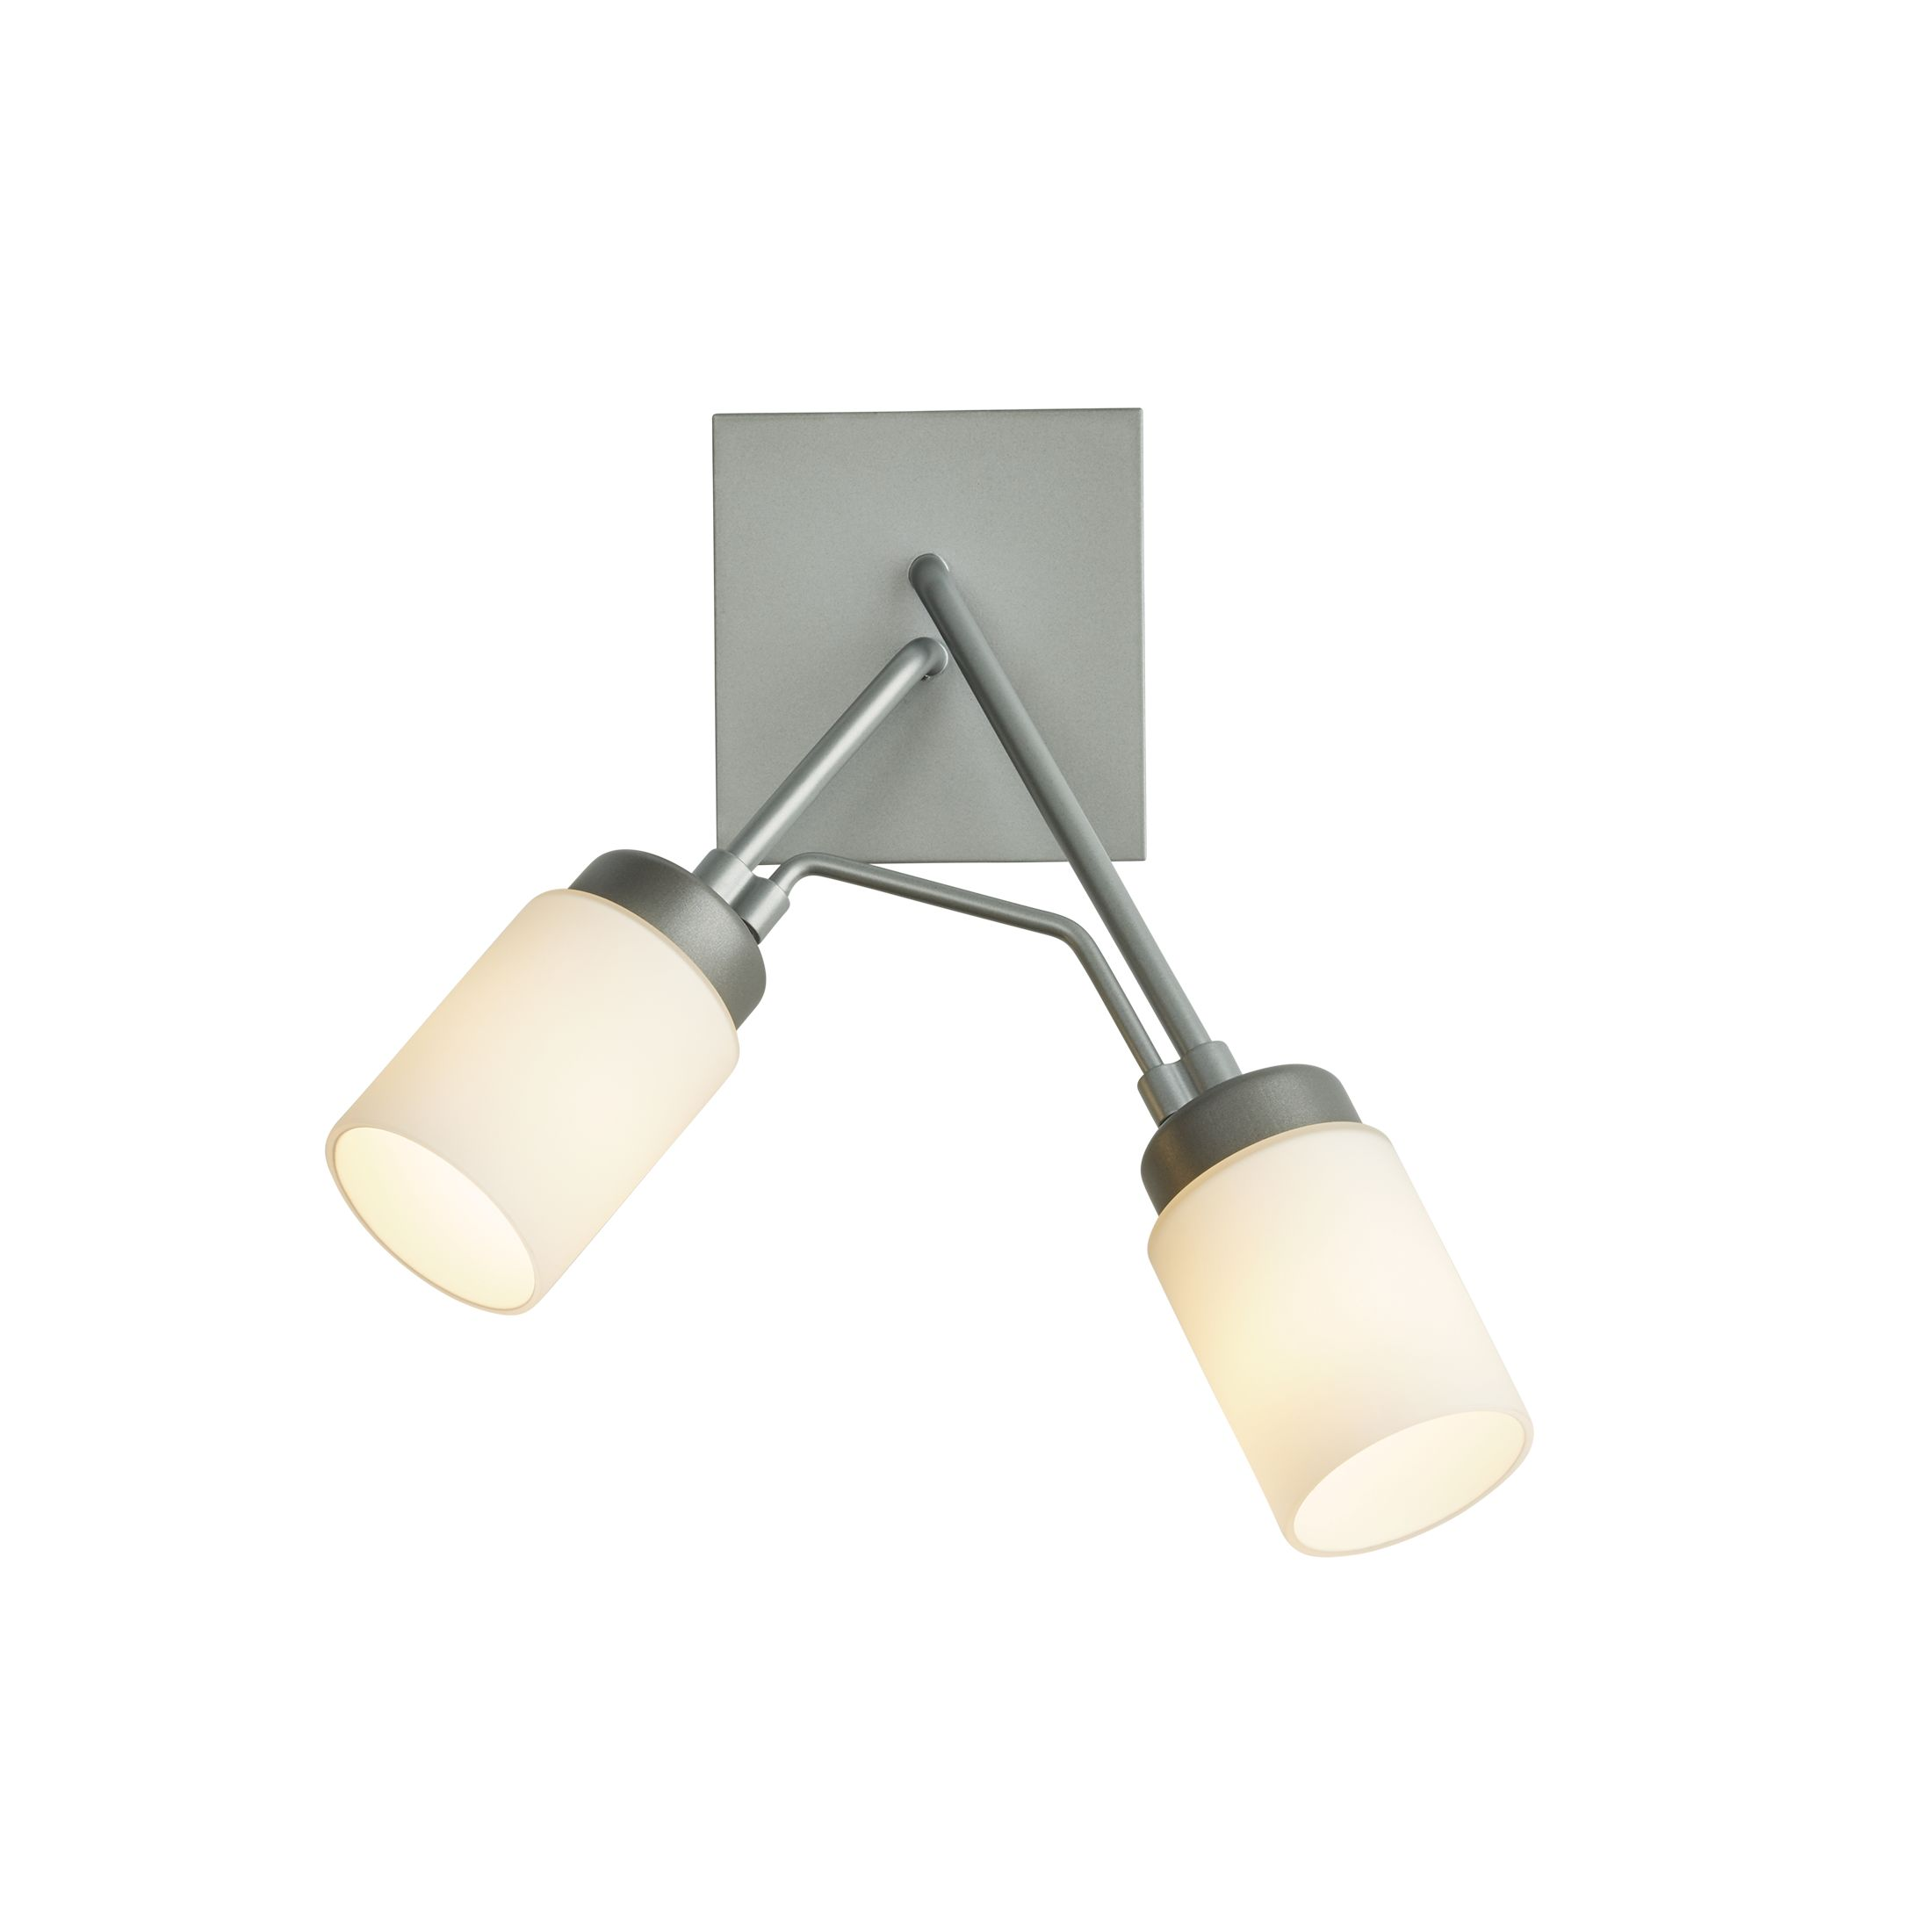 Thumbnail for Divergence Outdoor Sconce